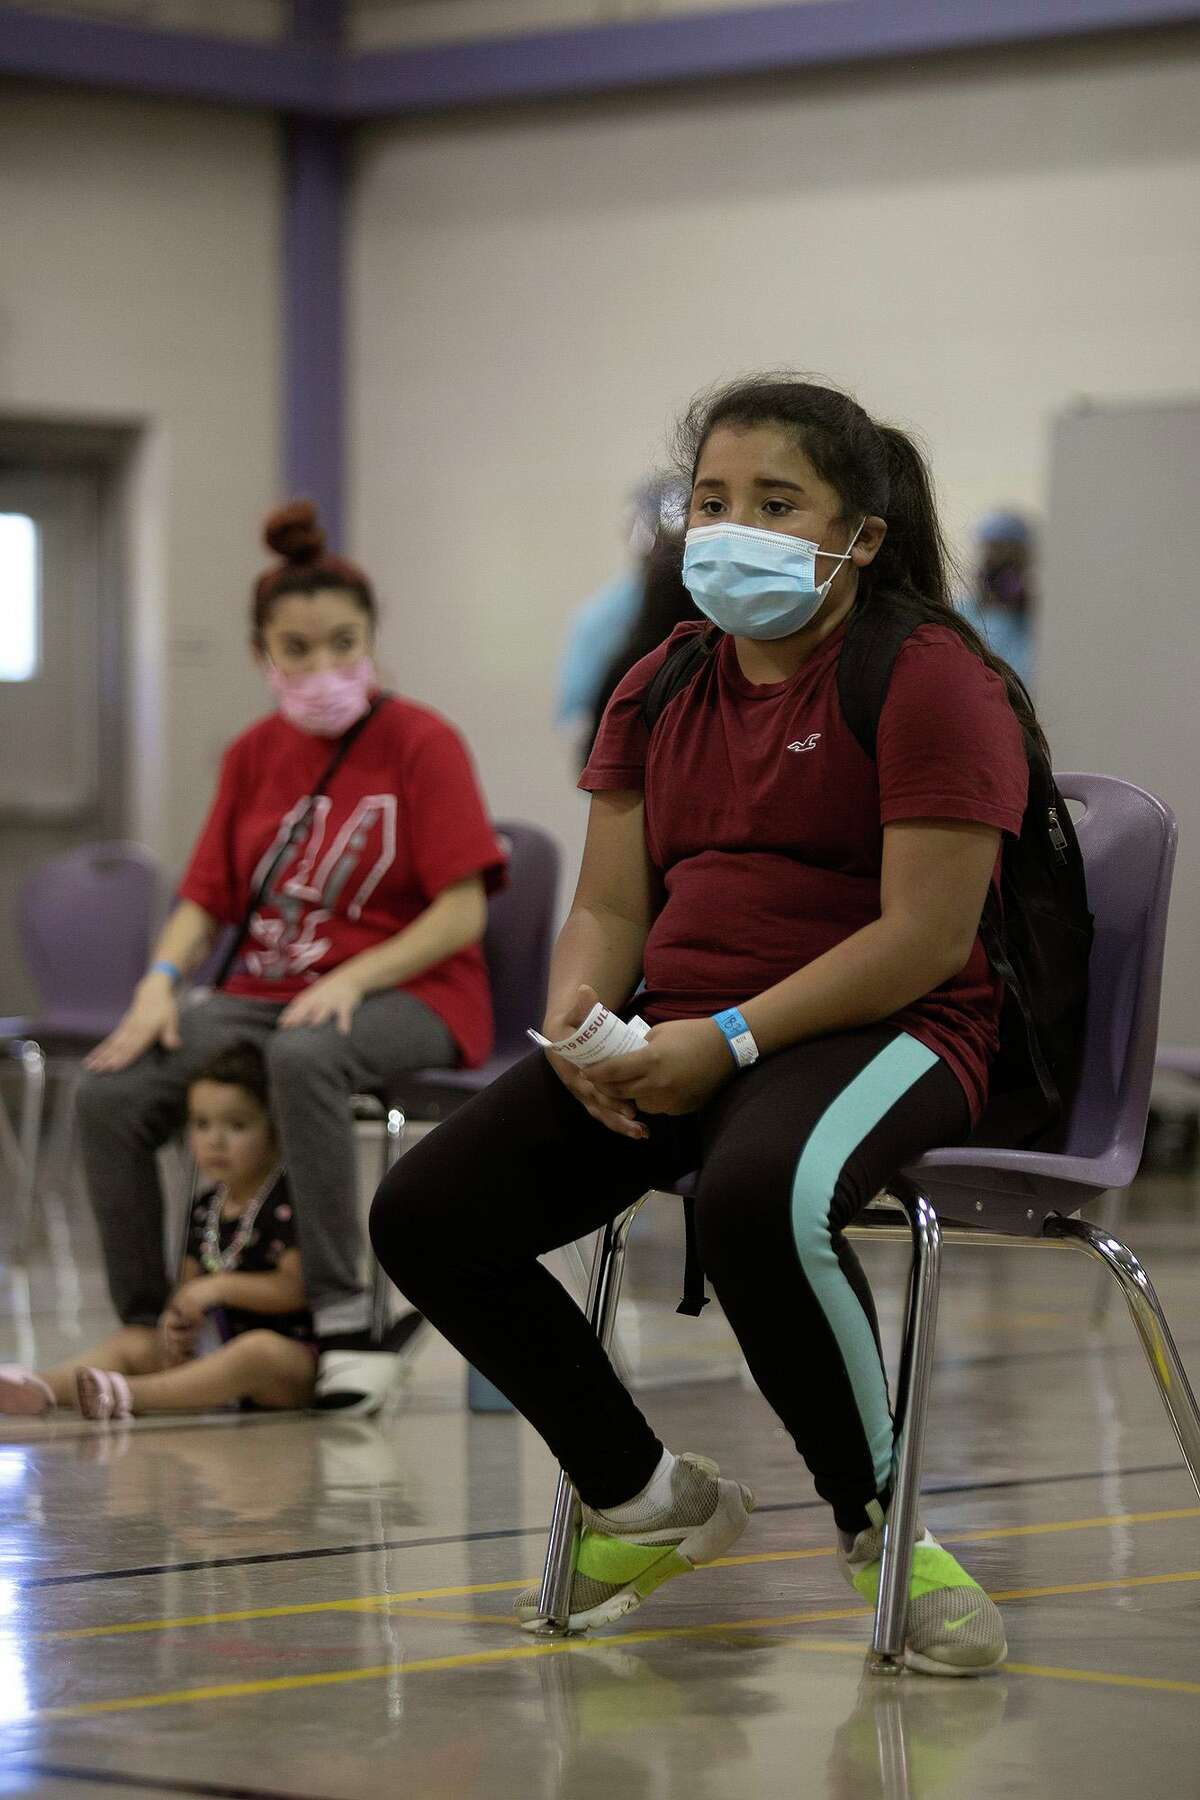 Yocelyn Moreno, 12, waits her turn for a COVID-19 test at Will Rodgers Academy, one of San Antonio Metropolitan Health's walk-up testing sites.